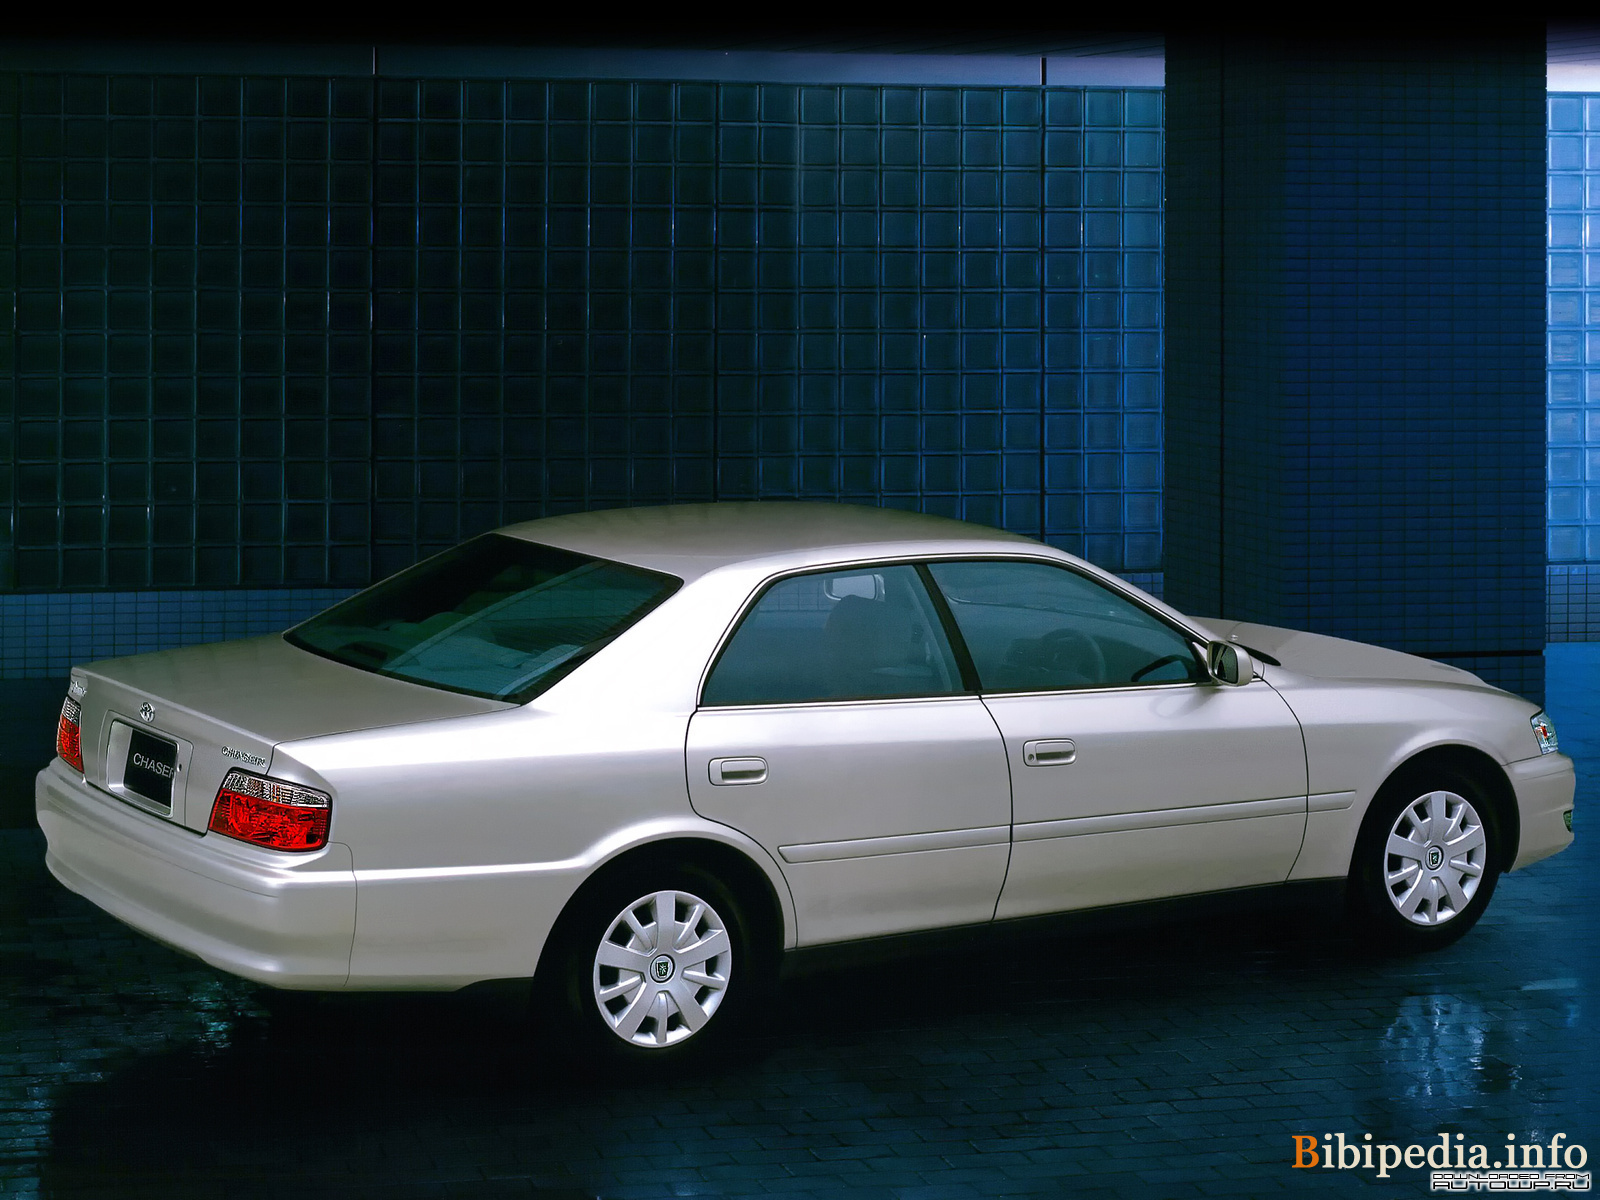 toyota chaser (zx 100) 1999 models #10